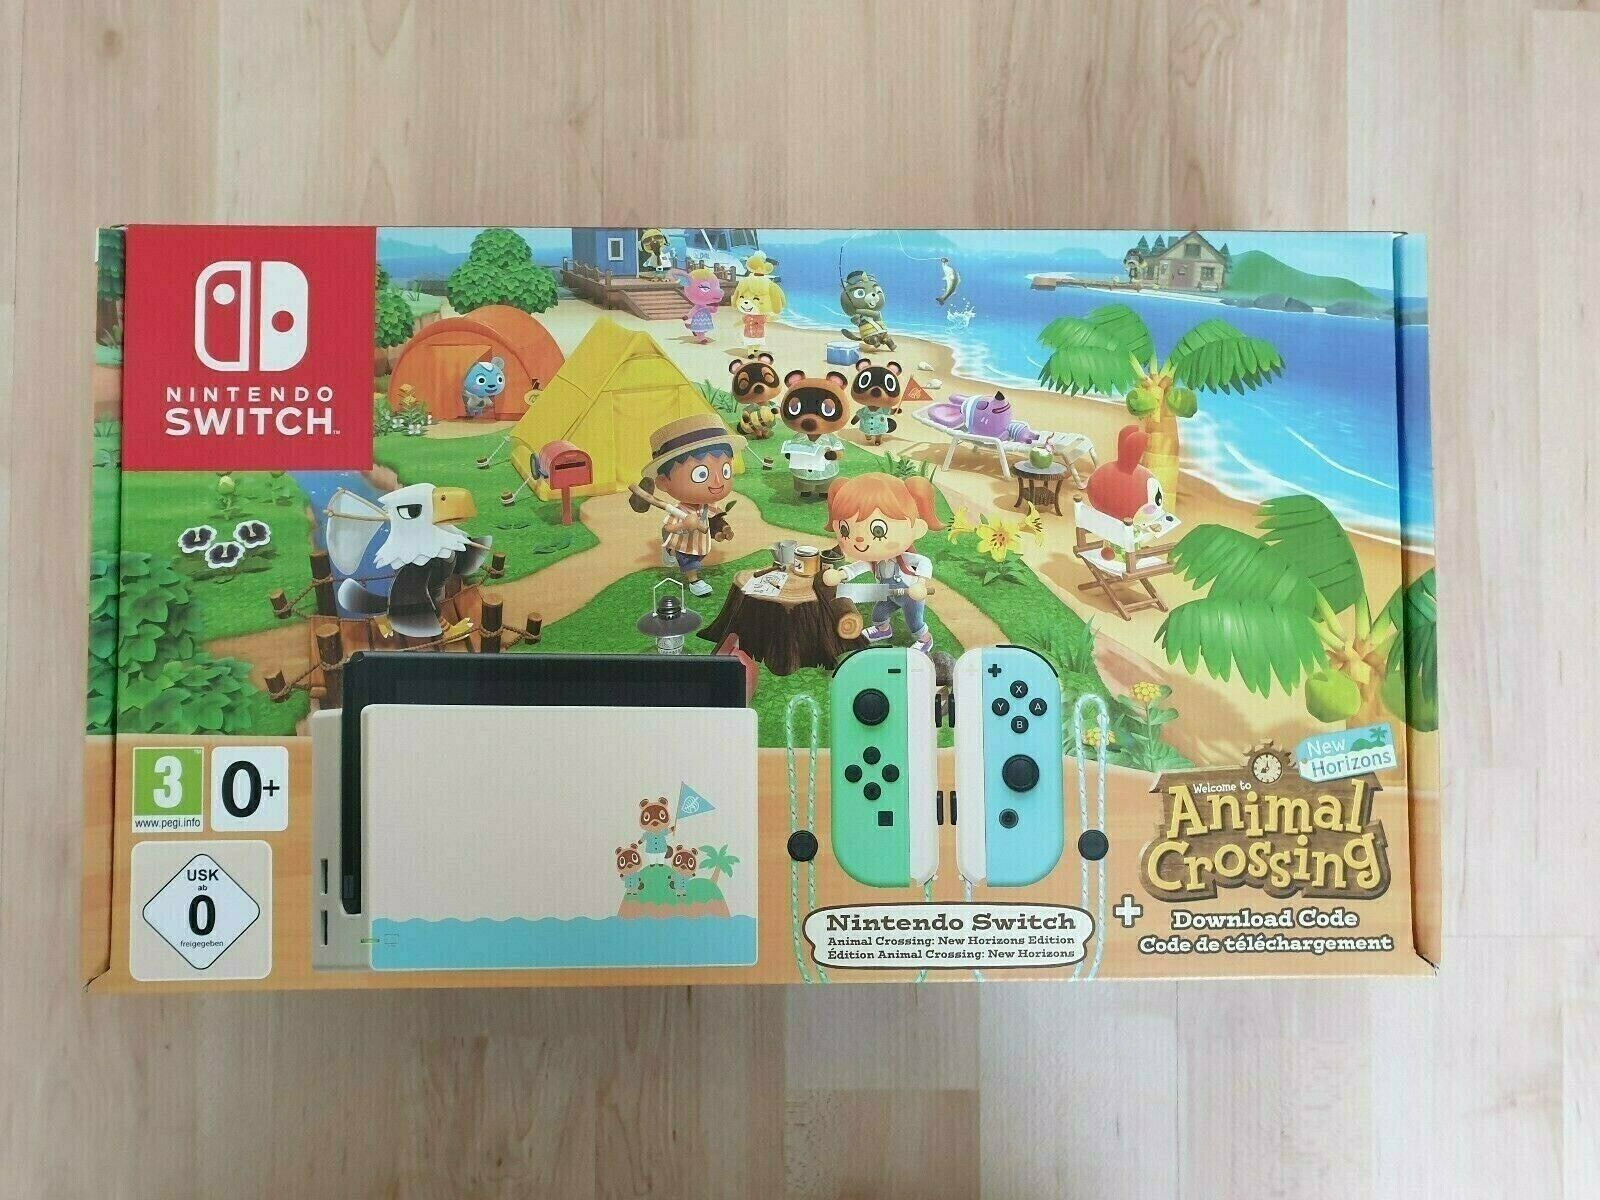 Nintendo Switch Animal Crossing: New Horizons limited Edition